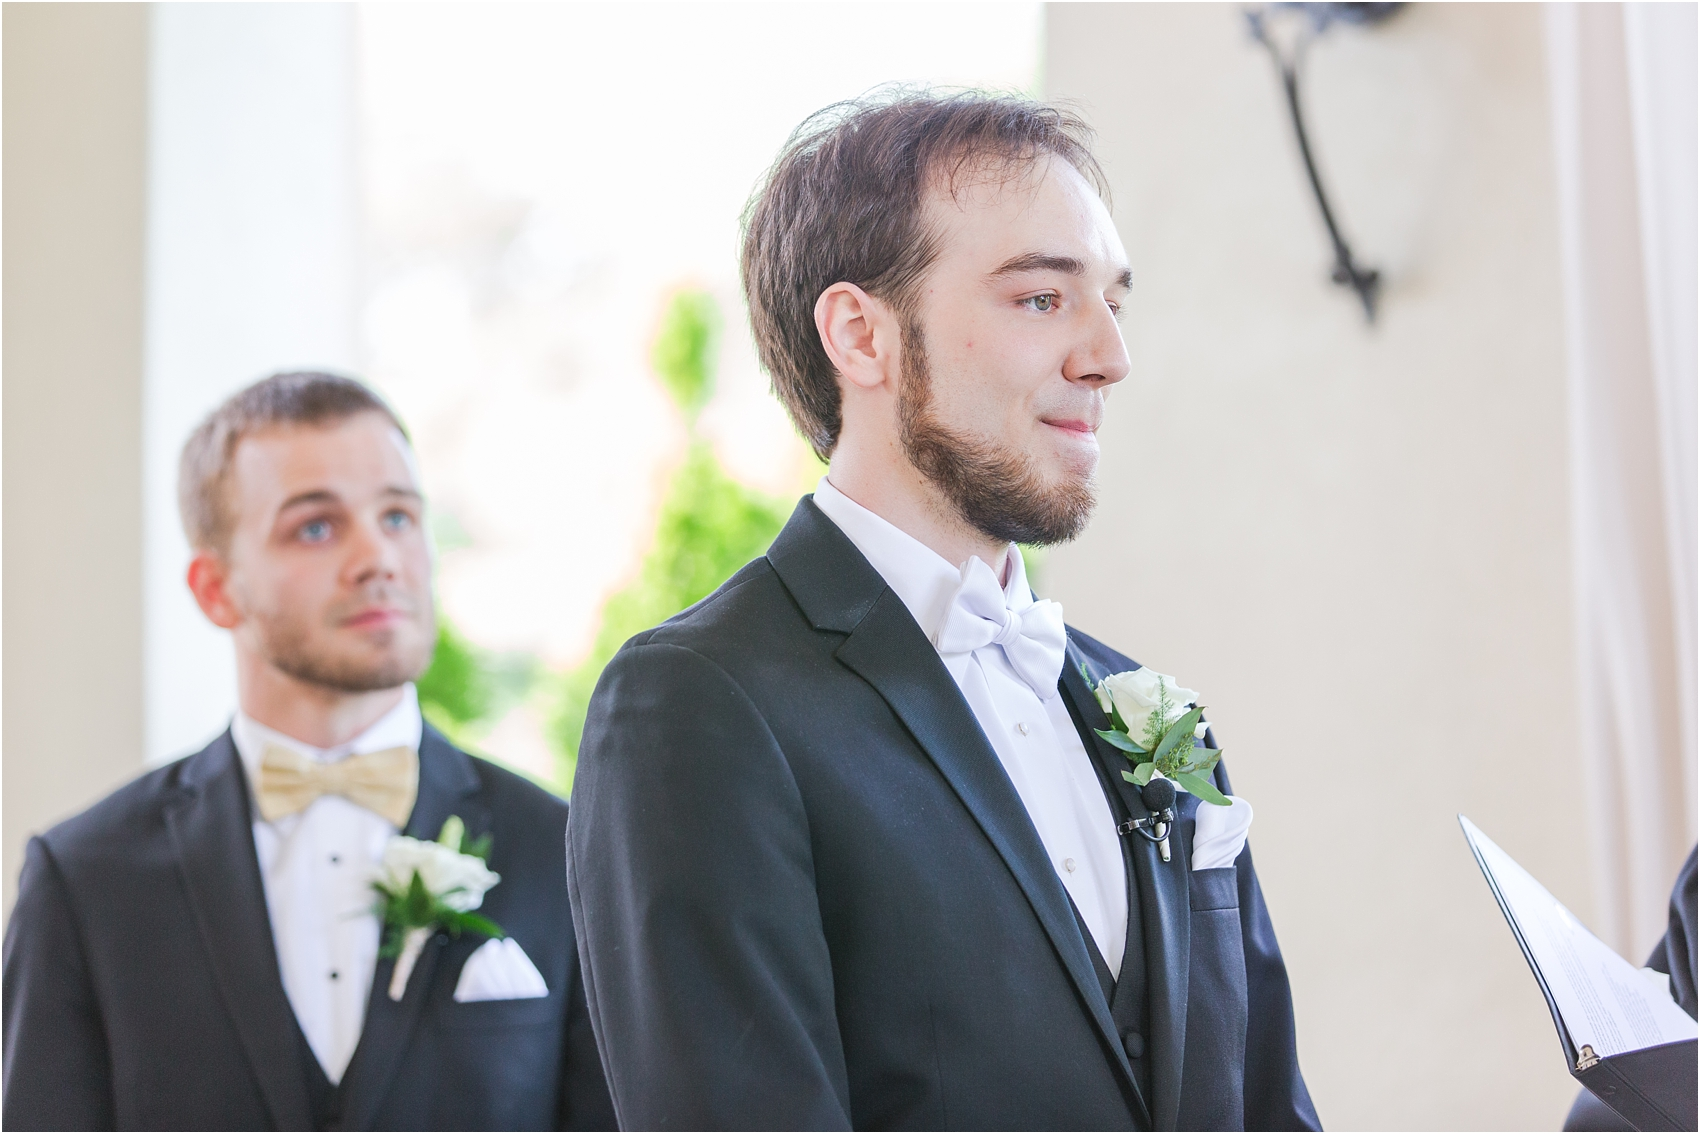 lord-of-the-rings-inspired-wedding-photos-at-crystal-gardens-in-howell-mi-by-courtney-carolyn-photography_0038.jpg